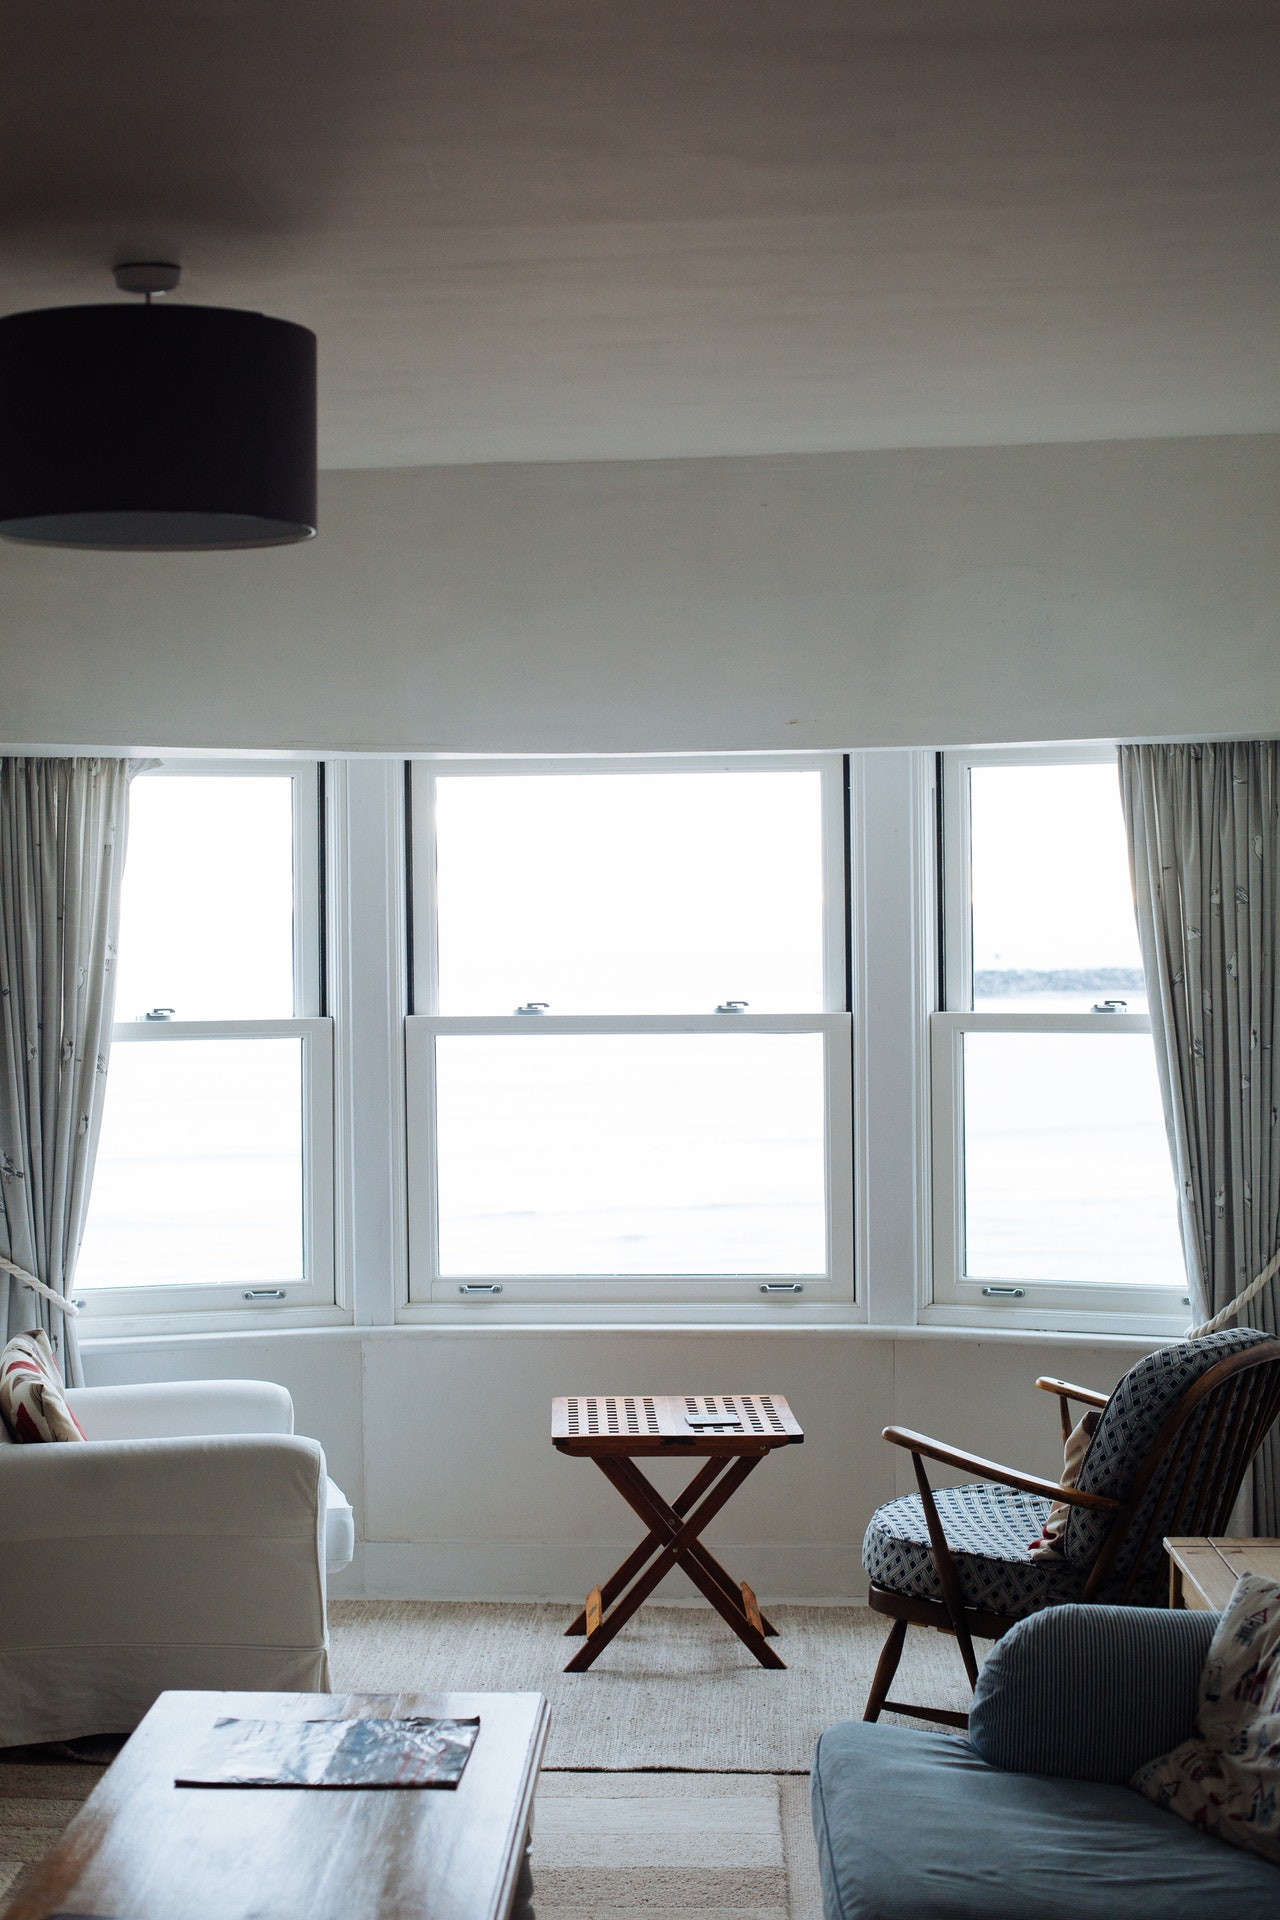 two-chairs-facing-towards-white-casement-window-776940